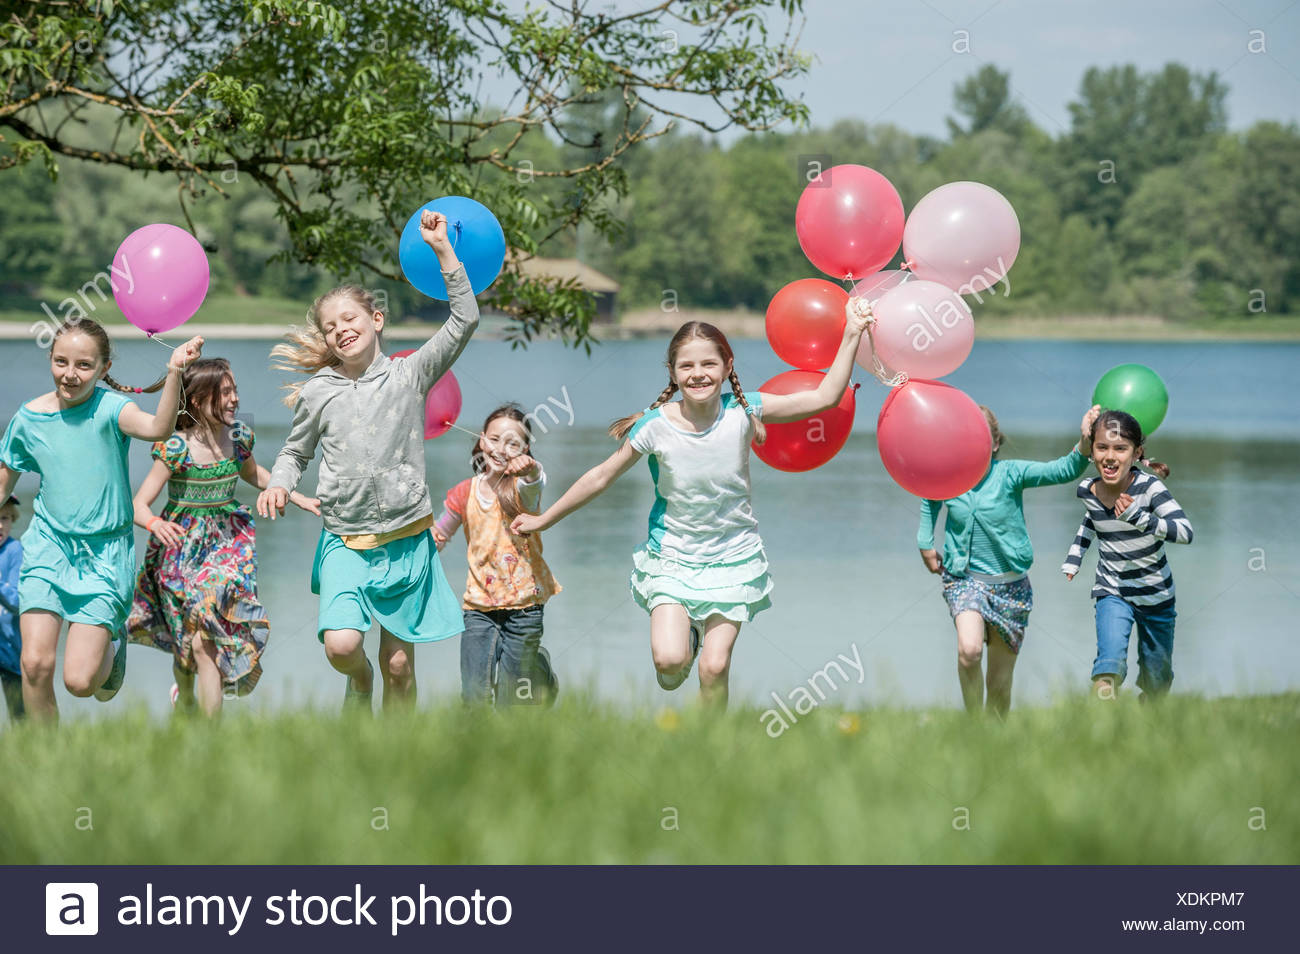 Children running in park with balloons, Munich, Bavaria, Germany - Stock Image